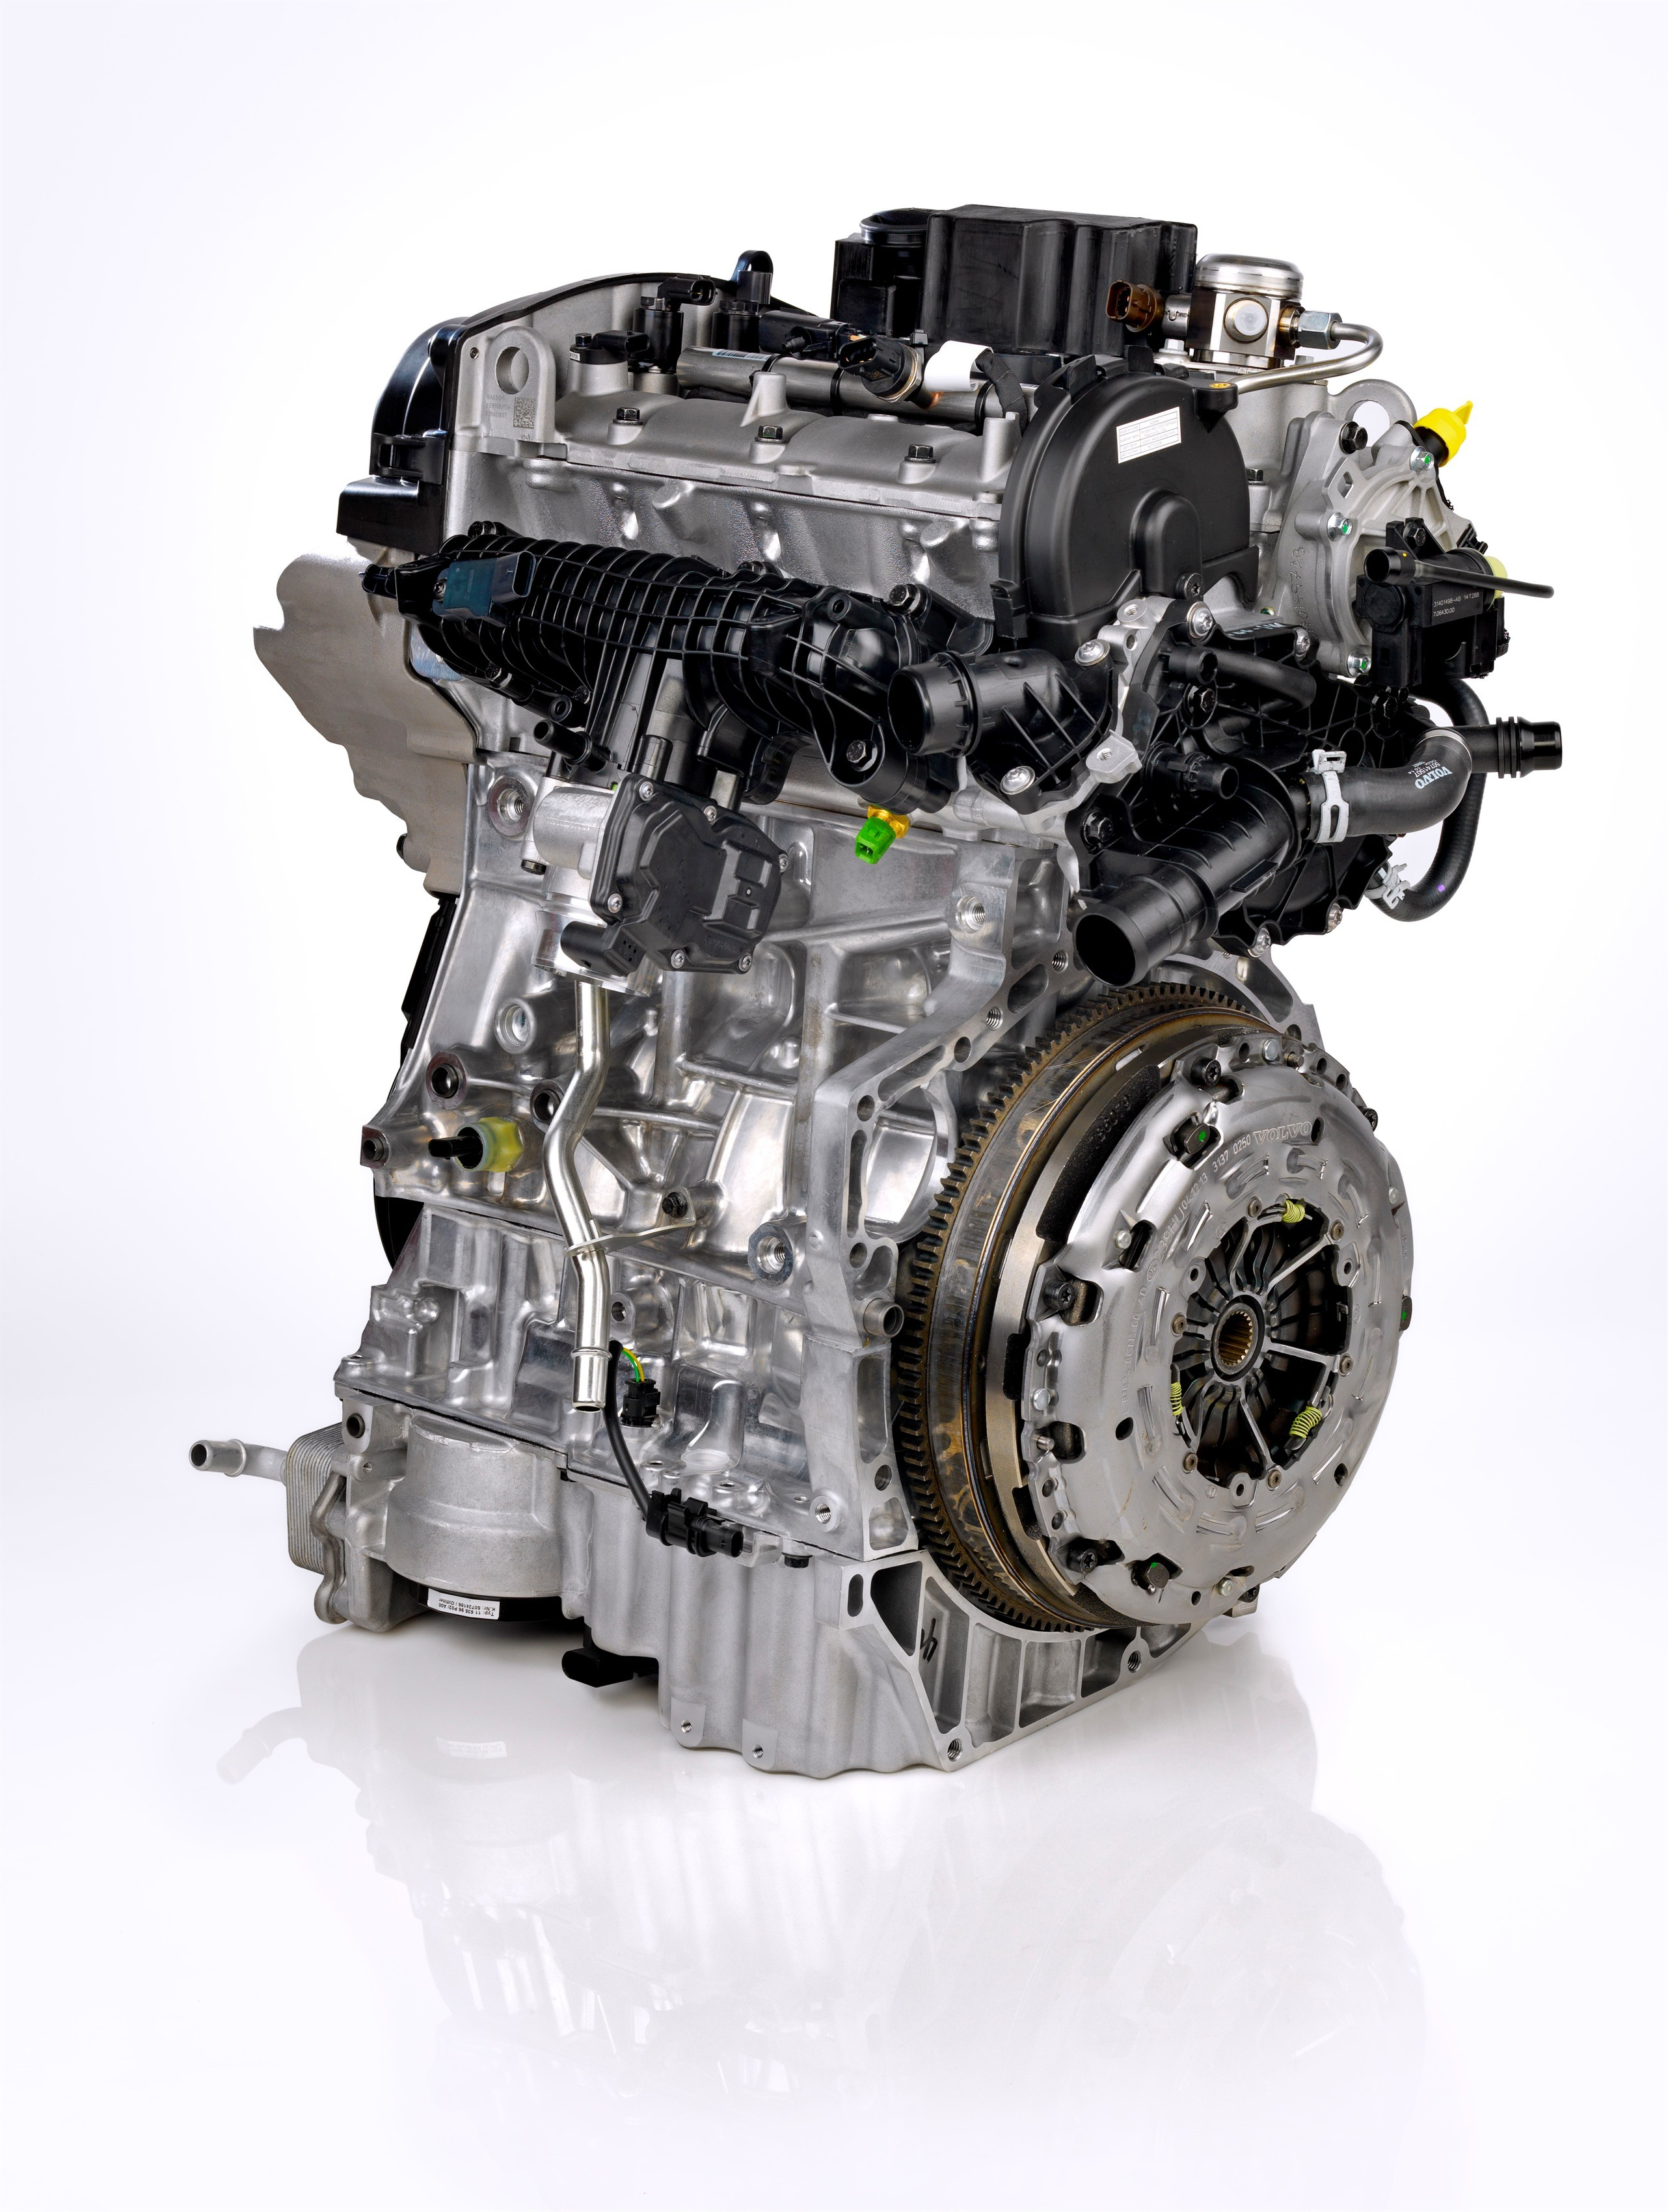 Volvo 1 5 Drive E 3 Cylinder Teased To Produce Up To 180 Hp On Cma Platform Cars Autoevolution